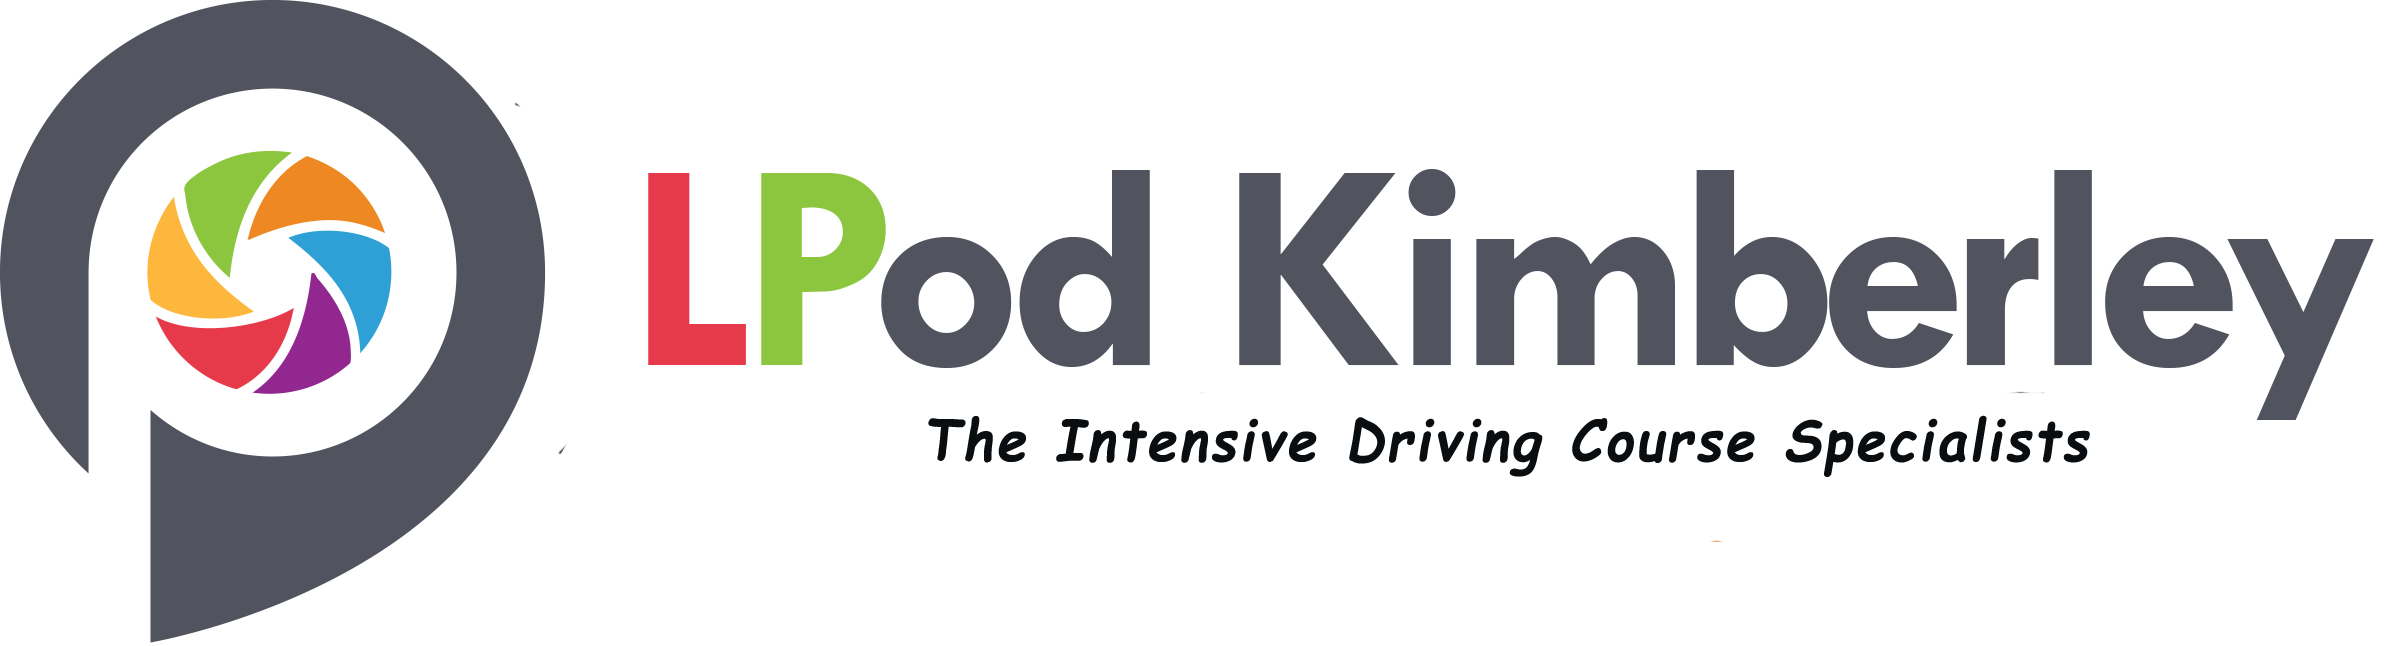 intensive driving courses Kimberley